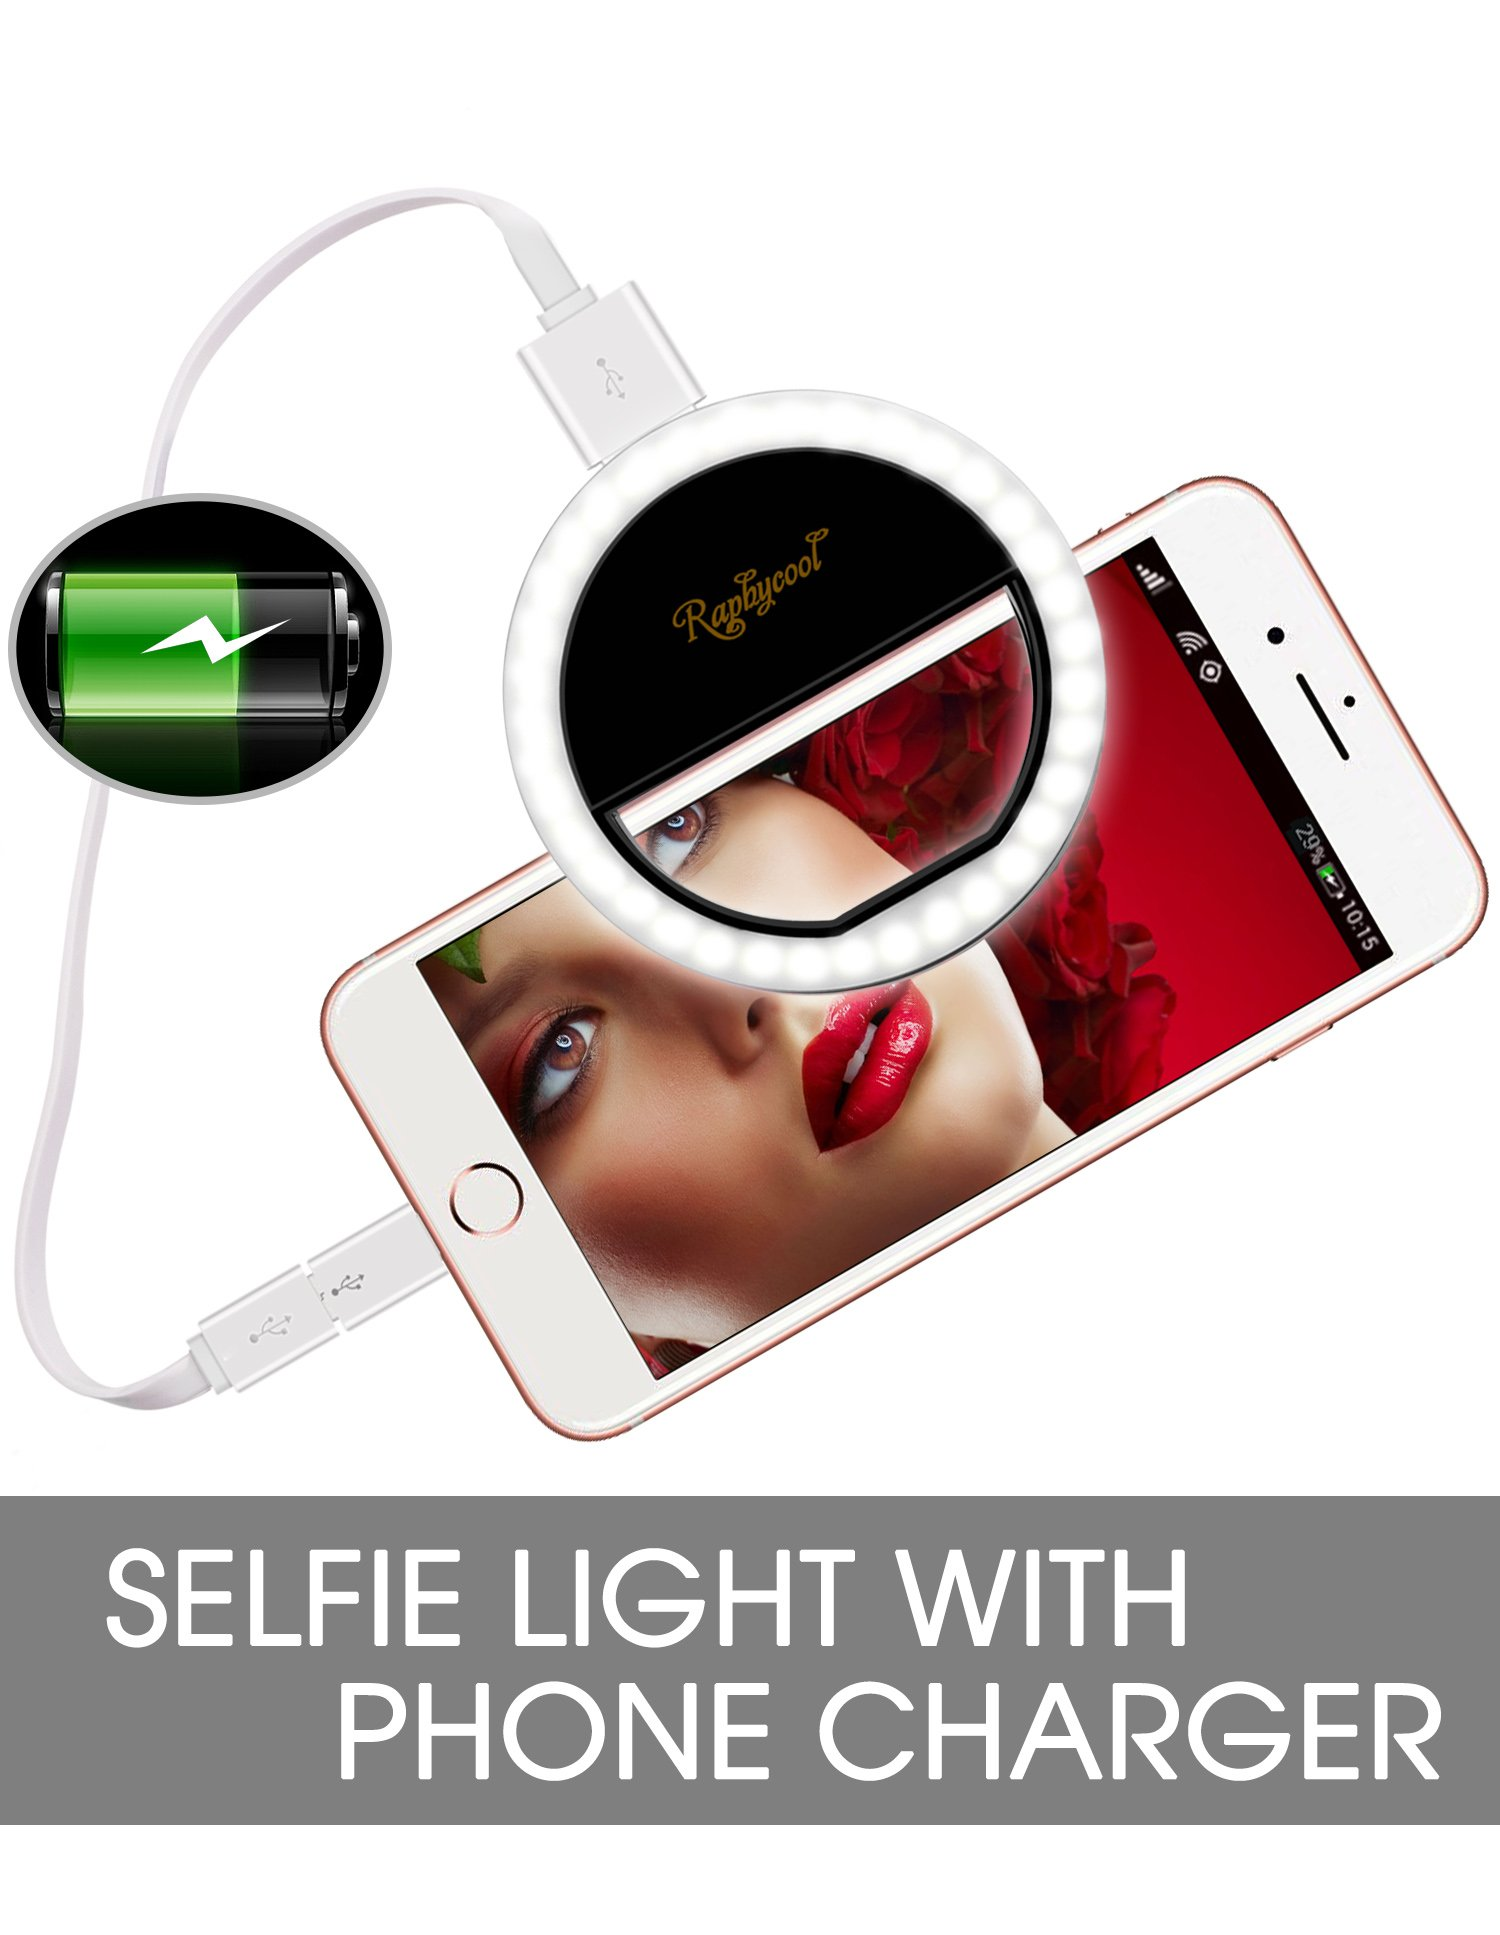 Raphycool Selfie Light Ring Lights 36 LED Circle Light Clip-On Phone Charger 1500mAh Power Bank Rechargeable Compatible with Cell Phone Laptop Camera Photography Video Lighting Black